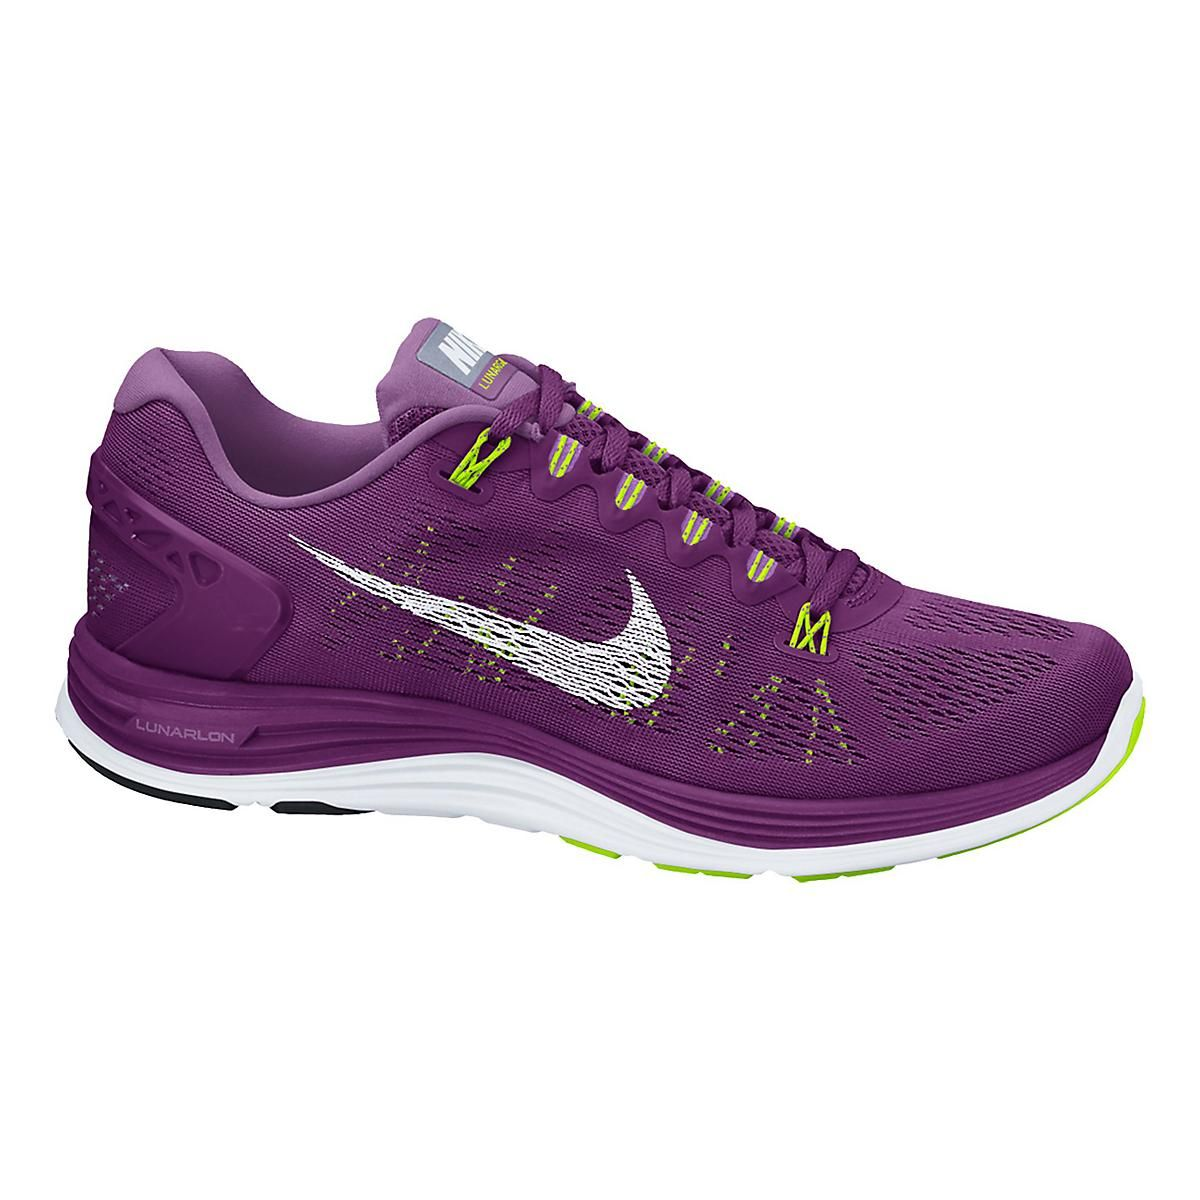 half off 02a35 f3a4d ... Buy your Nike Women s Lunarglide 5 Shoes - - Stability Running Shoes  from Wiggle.